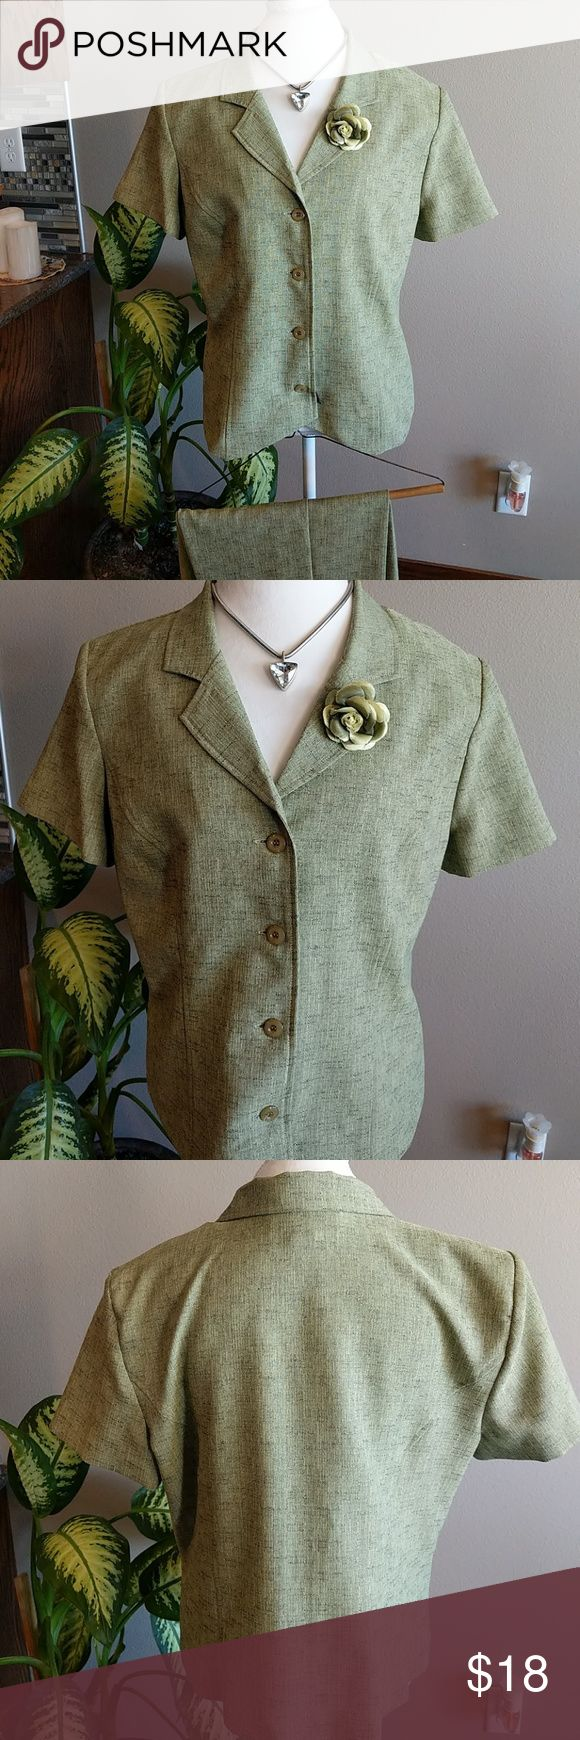 Sag Harbor green dress suit set Great shape like new Sag Harbor short sleeve jacket with matching pants. Jacket has four buttons does have shoulder pads built in. Pants have a side zipper elastic these have been hemmed to an inseam of about 27 and 1/2. Sag Harbor Tops Button Down Shirts